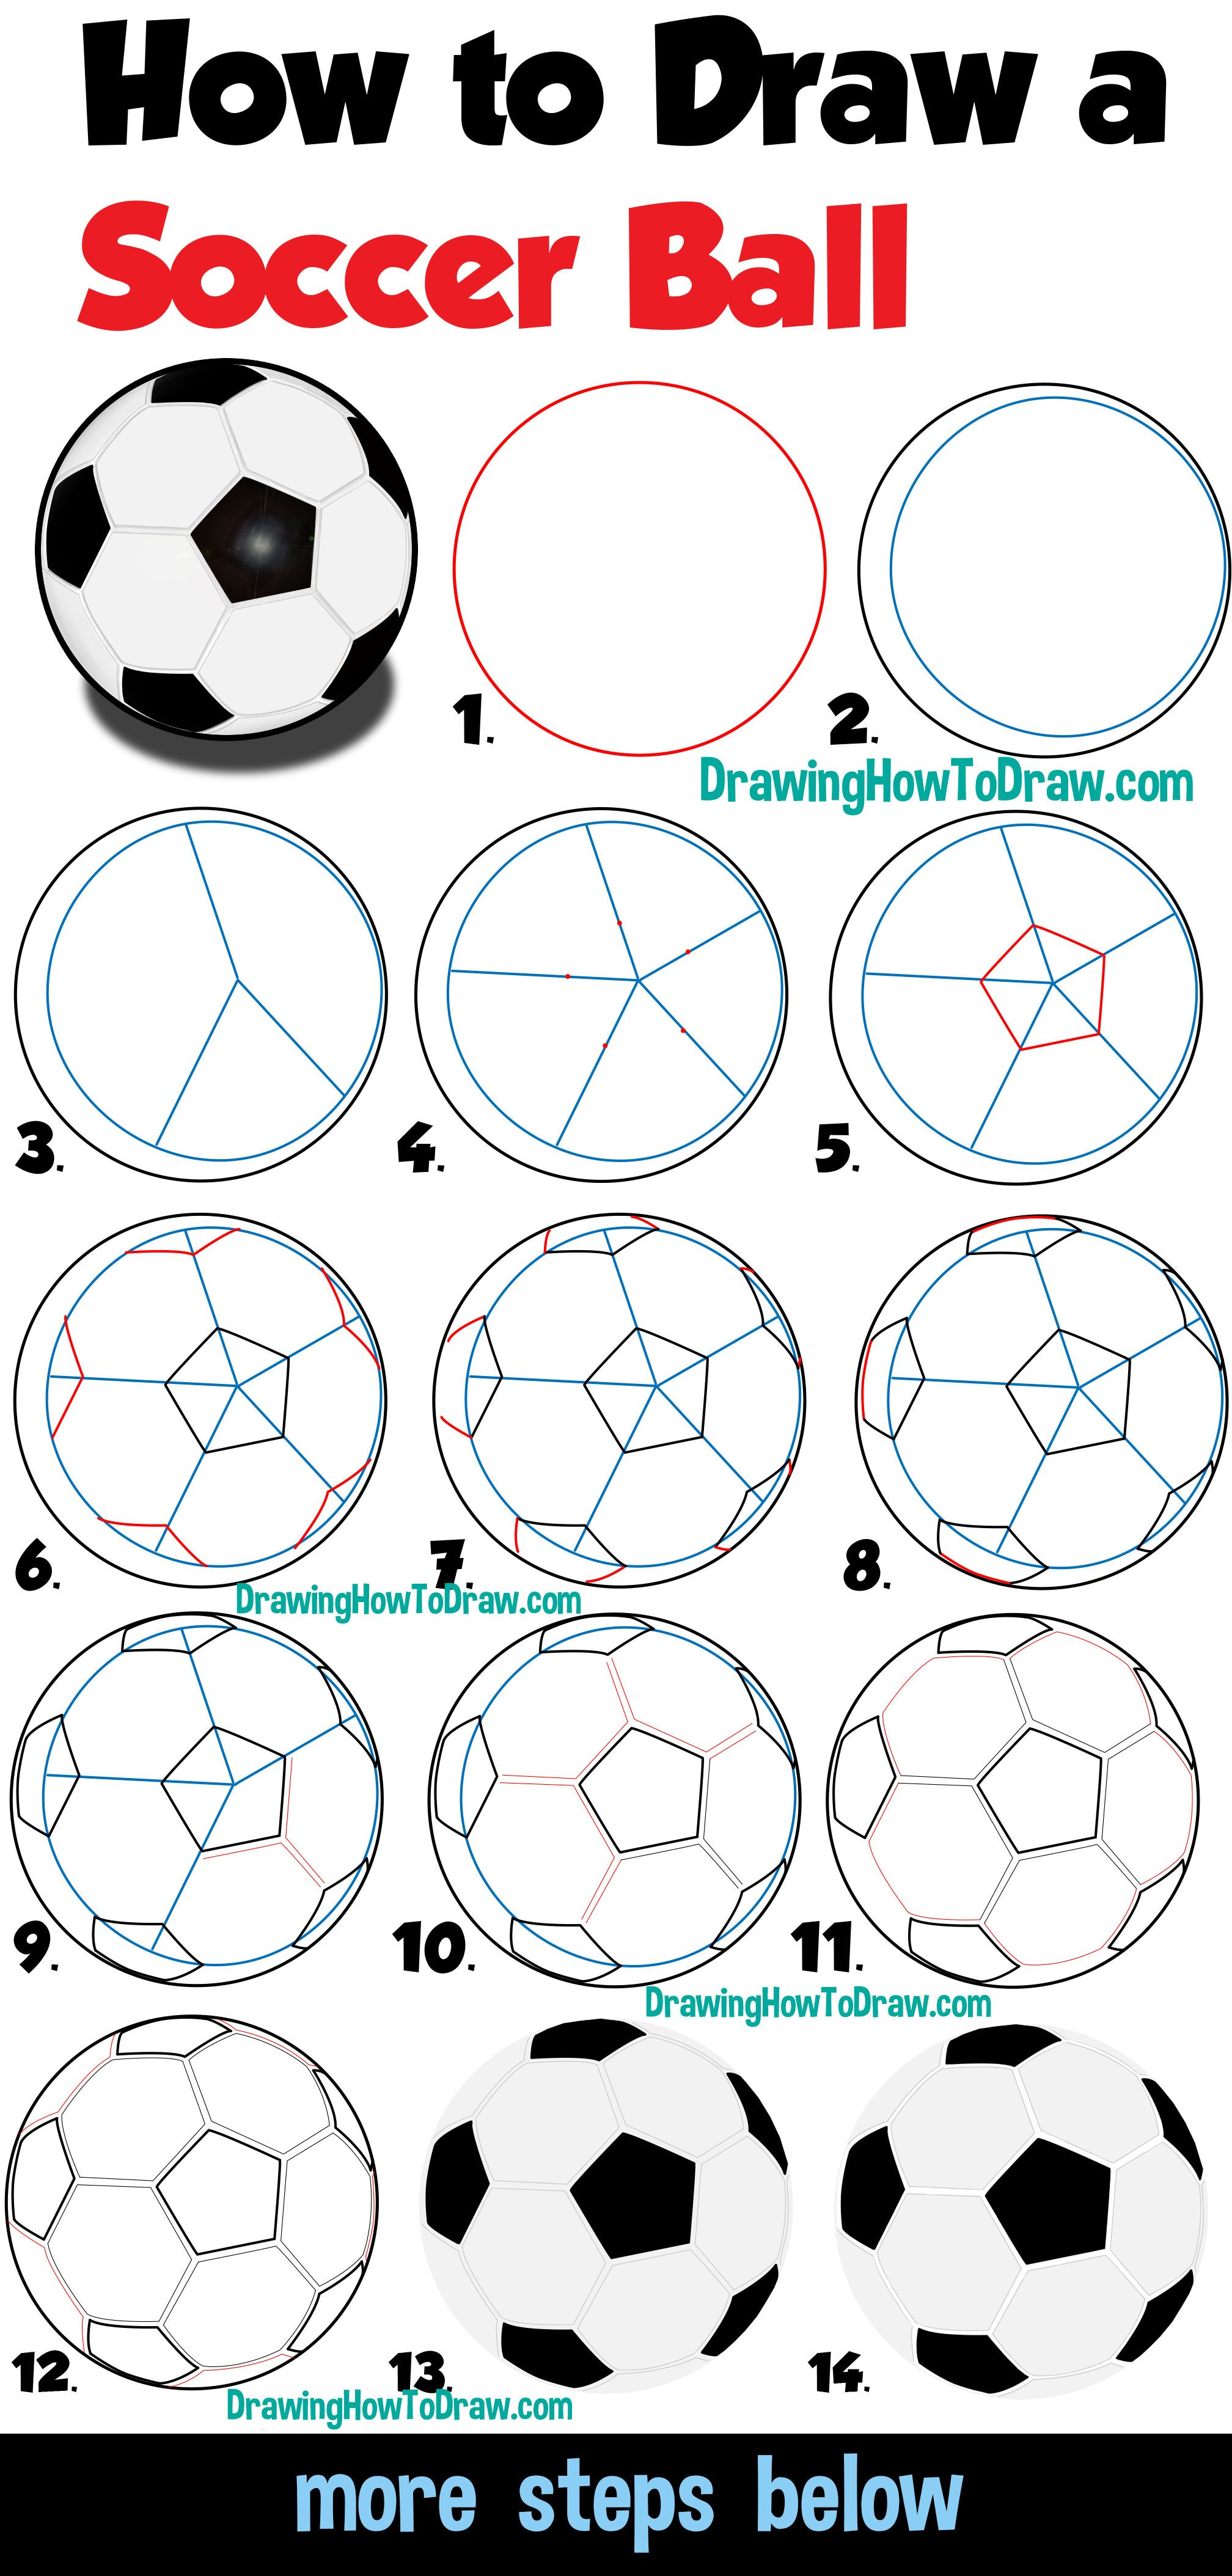 How To Draw A Soccer Ball Easy Step By Step Drawing Tutorial For Beginners How To Draw Step By Step Drawing Tutorials Drawing Tutorials For Beginners Step By Step Drawing